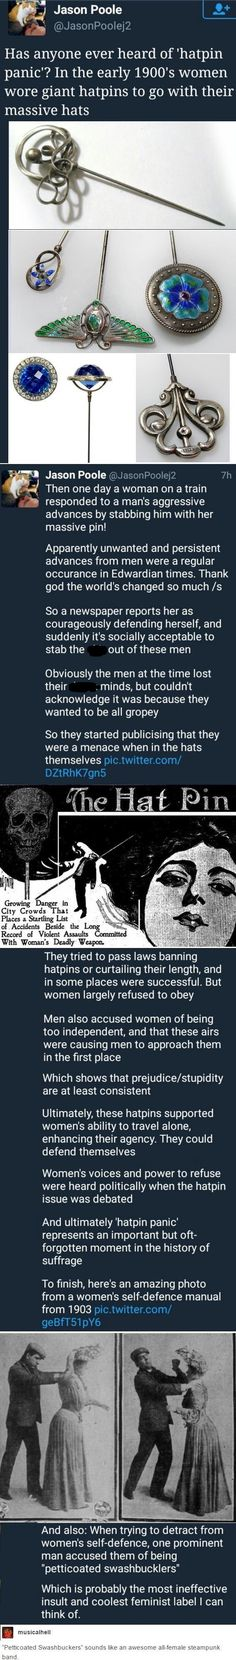 The hatpin panic and petticoated swashbucklers